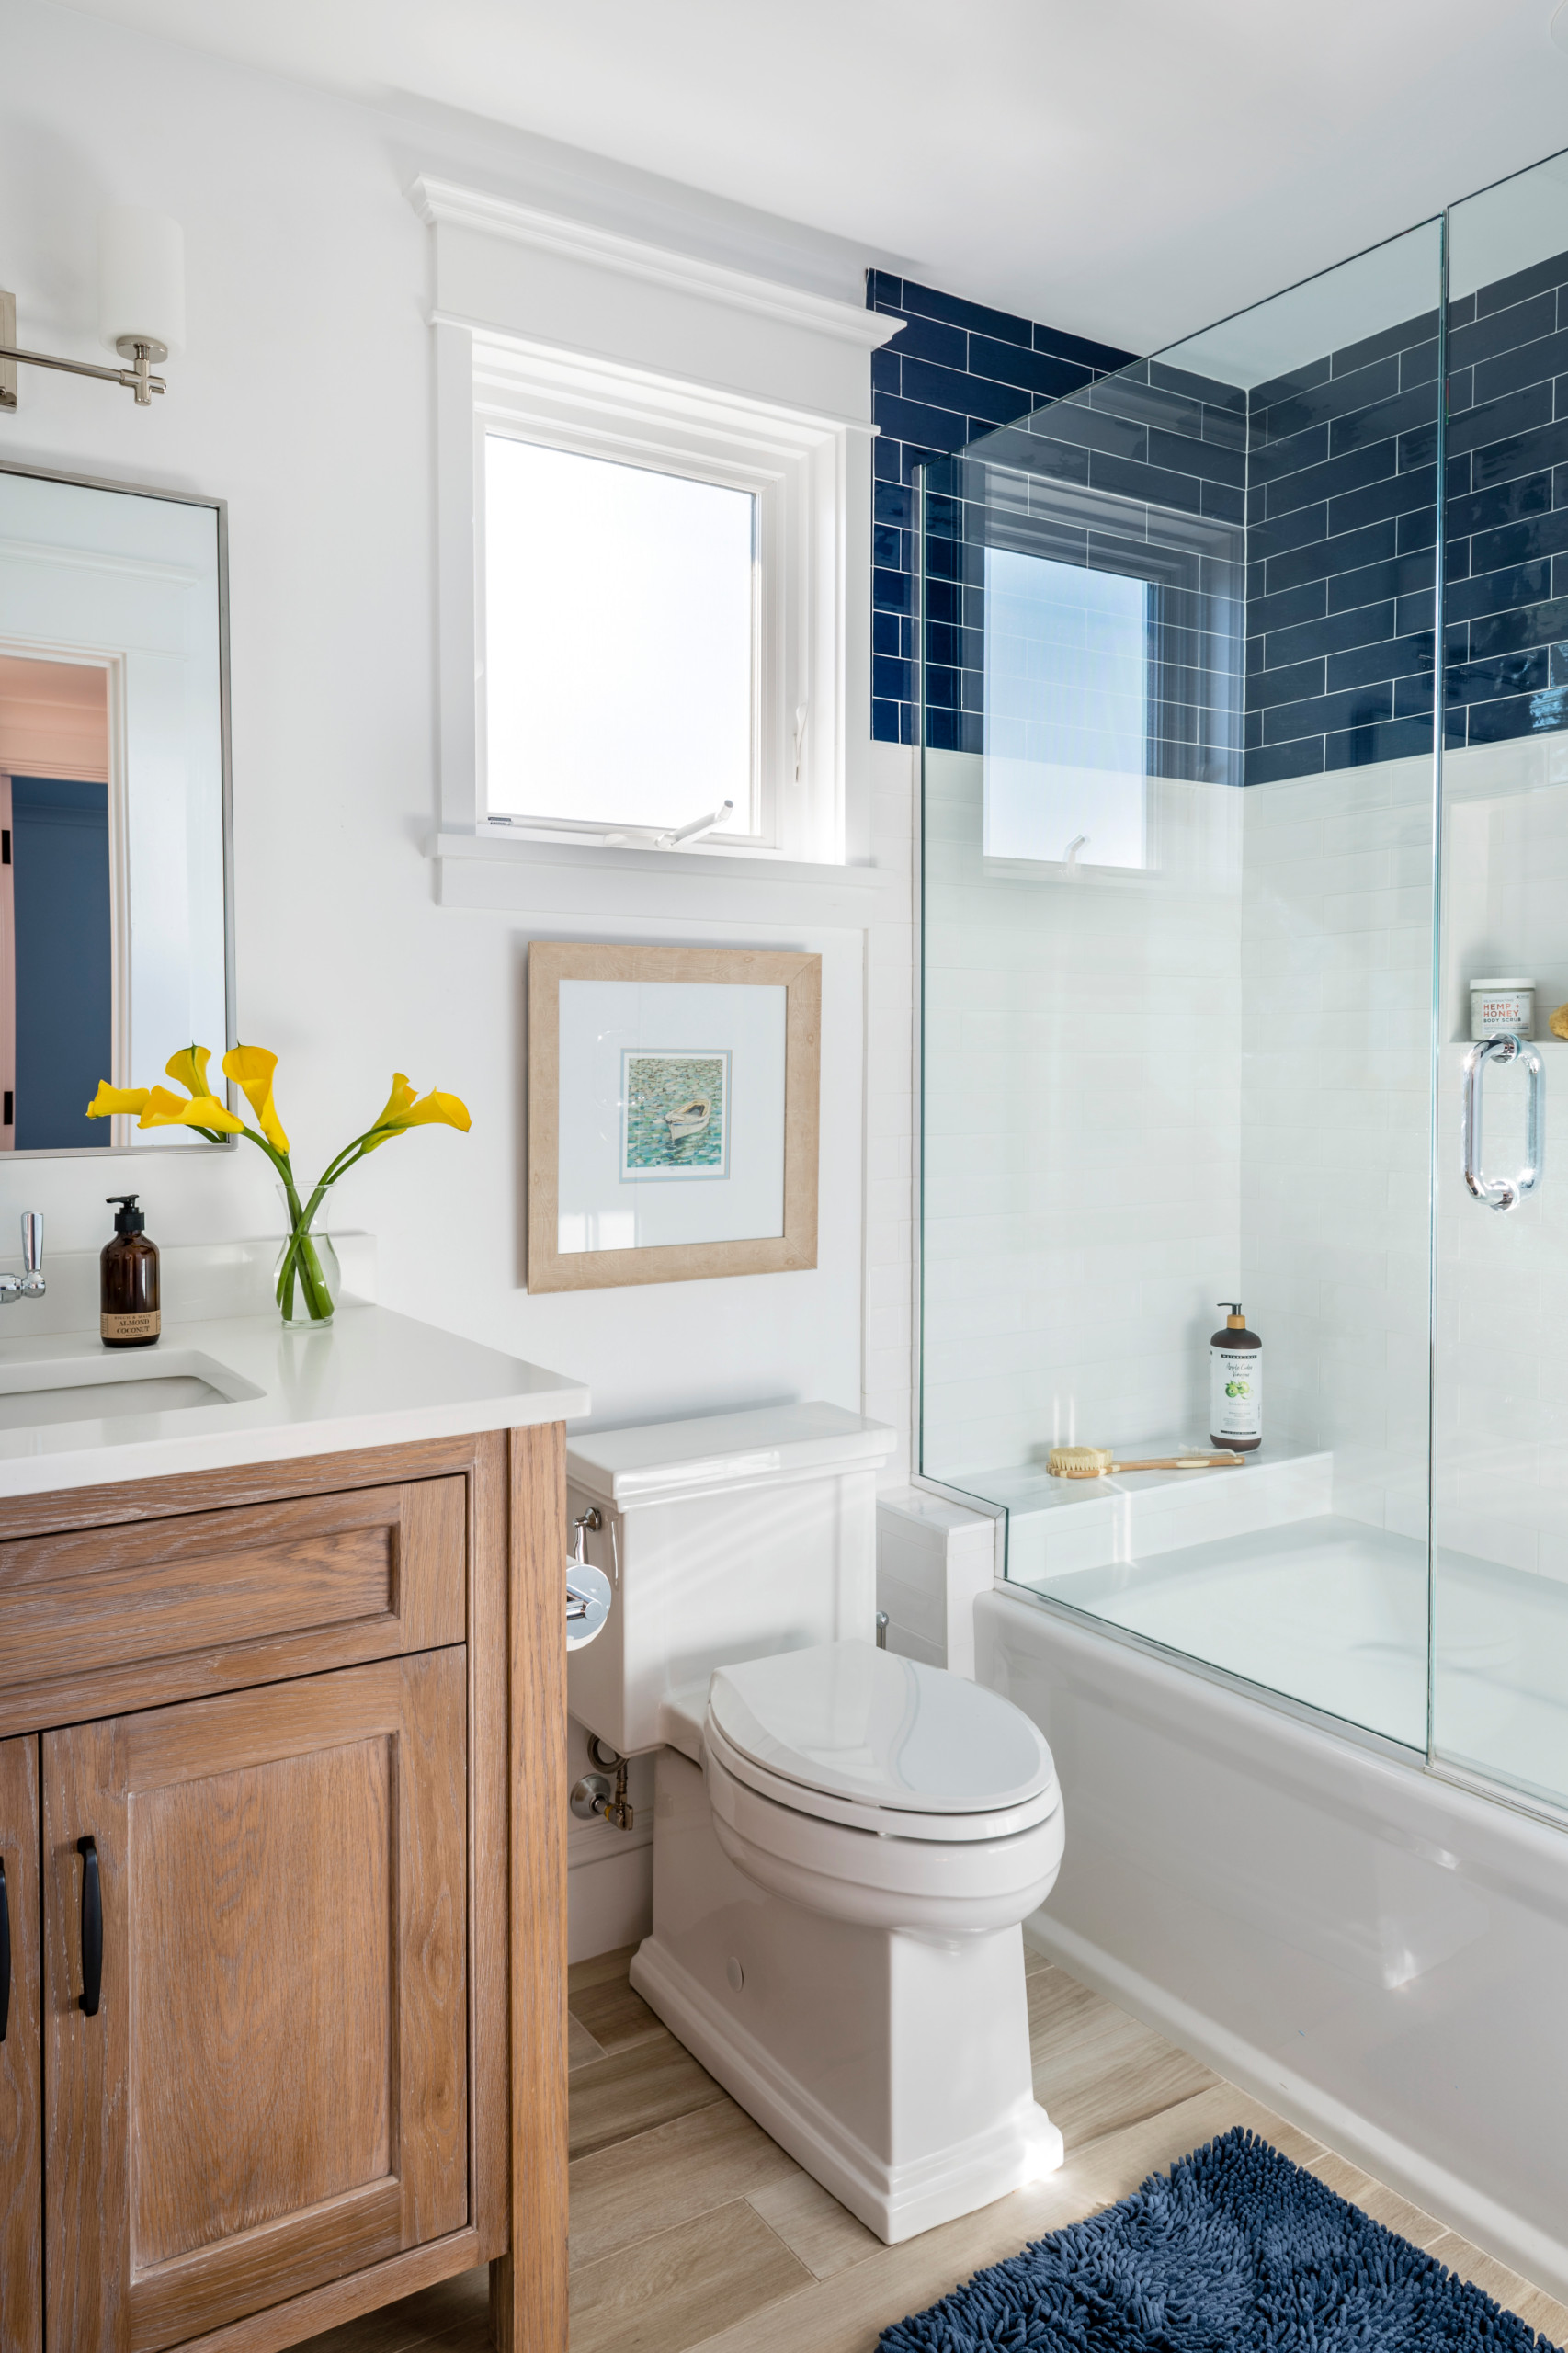 75 Beautiful Single Sink Bathroom Pictures Ideas February 2021 Houzz